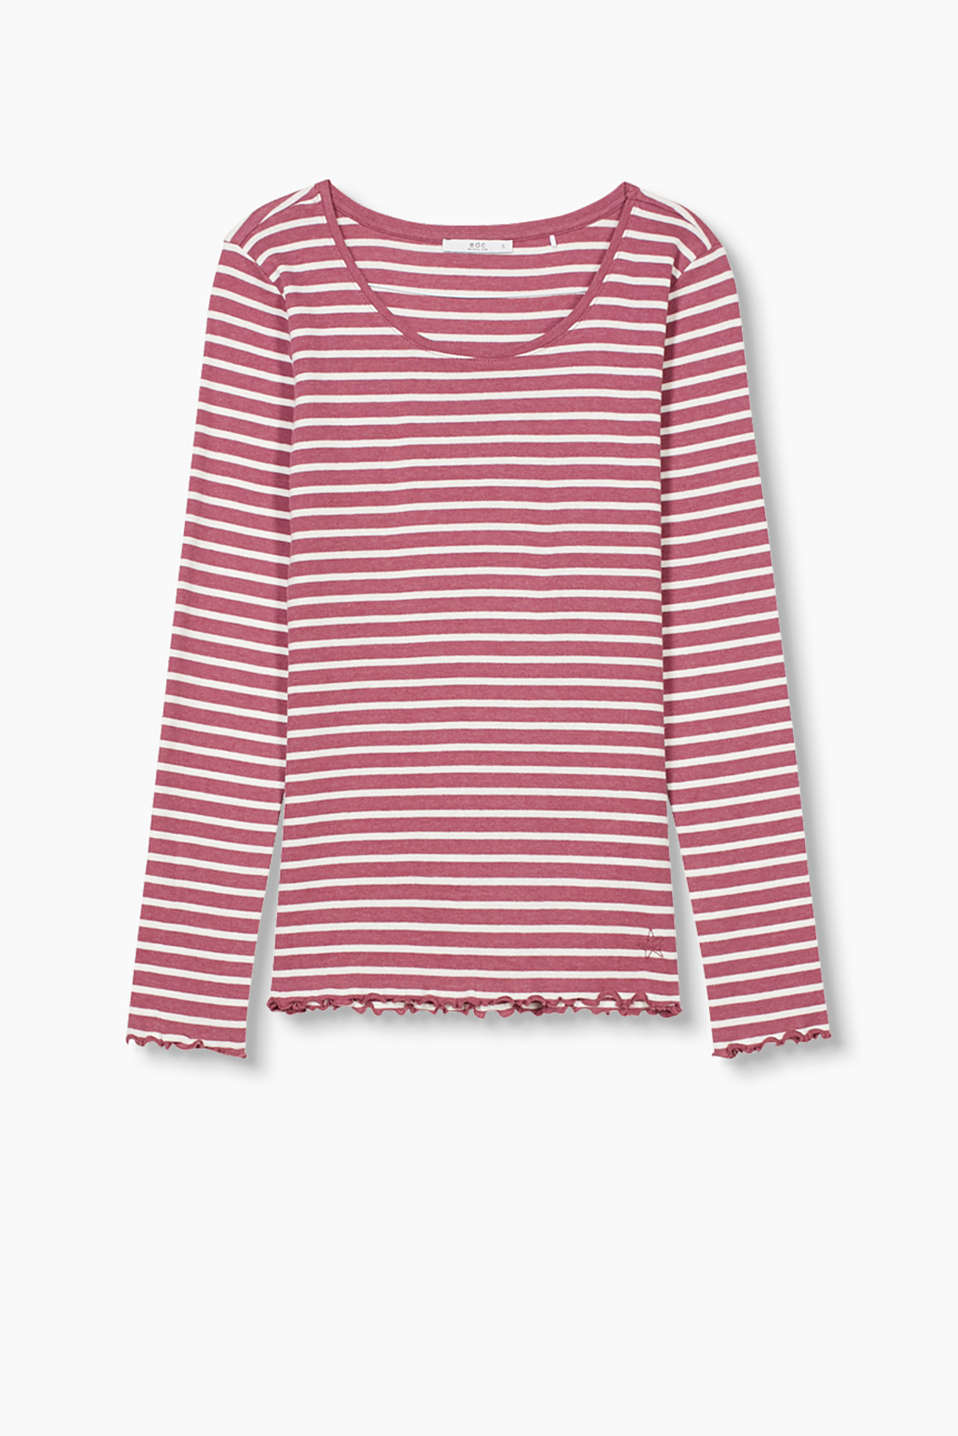 Striped long sleeve top in ribbed jersey with feminine, frilled edges